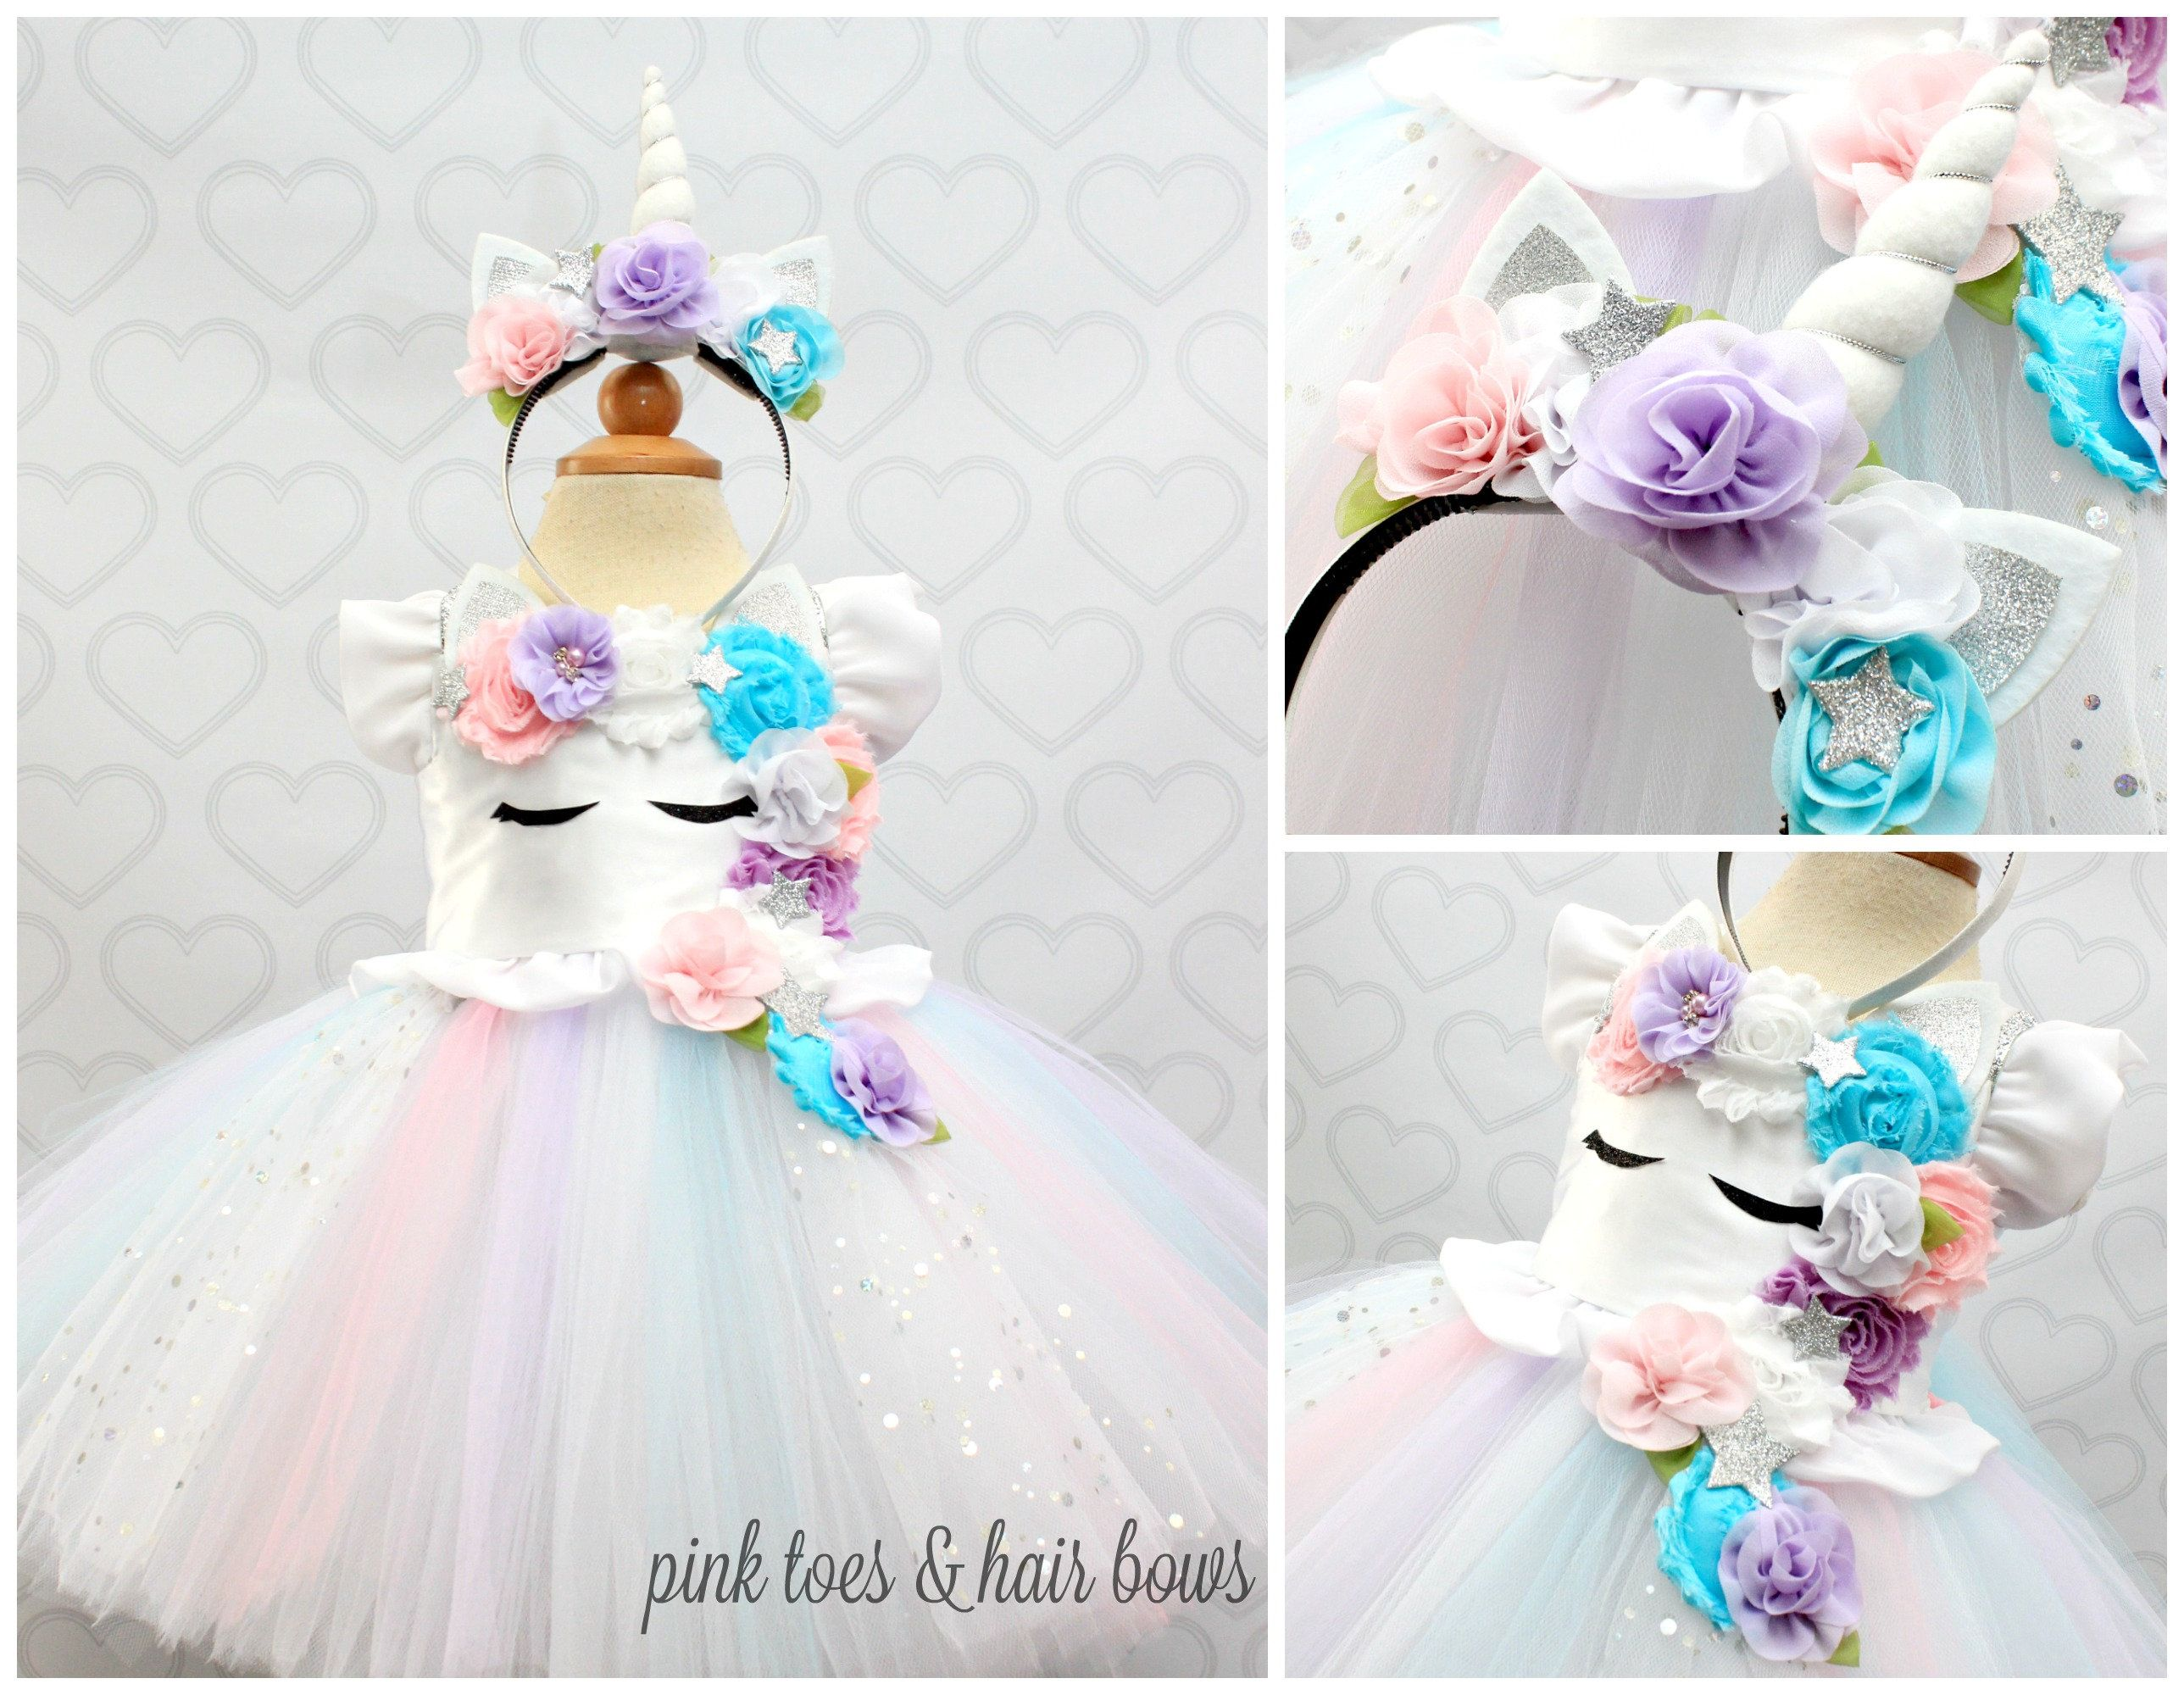 Tutu giveaways ideas